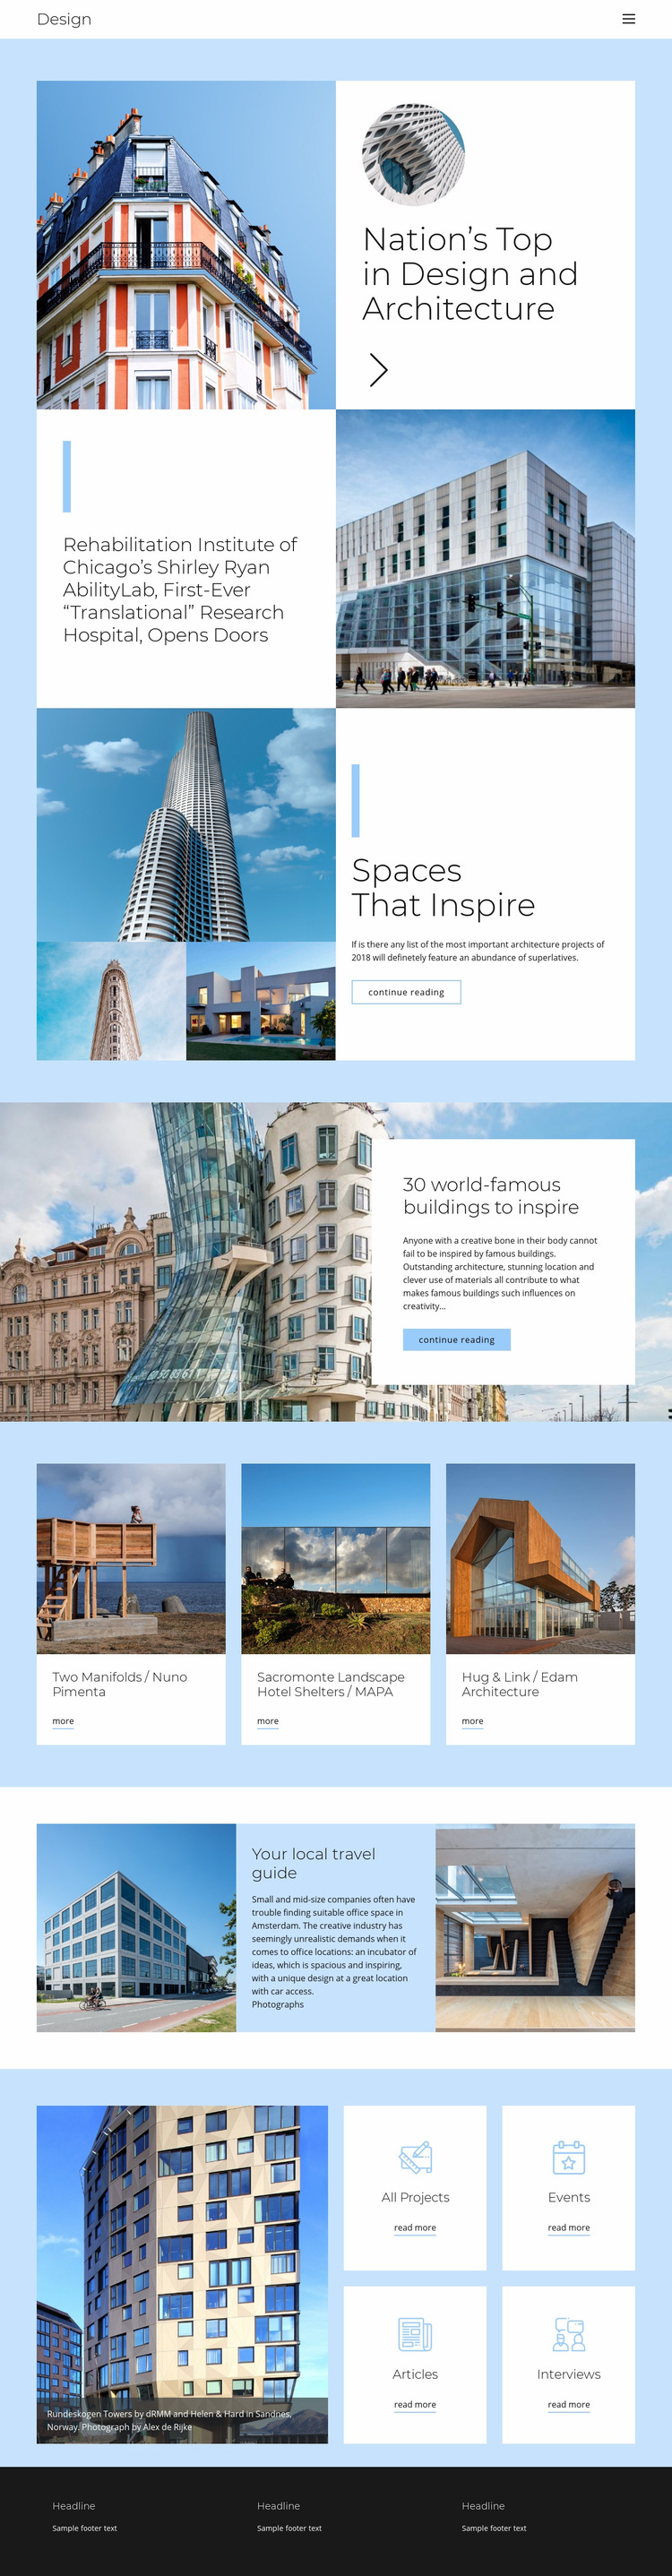 Architecture city guide Web Page Design